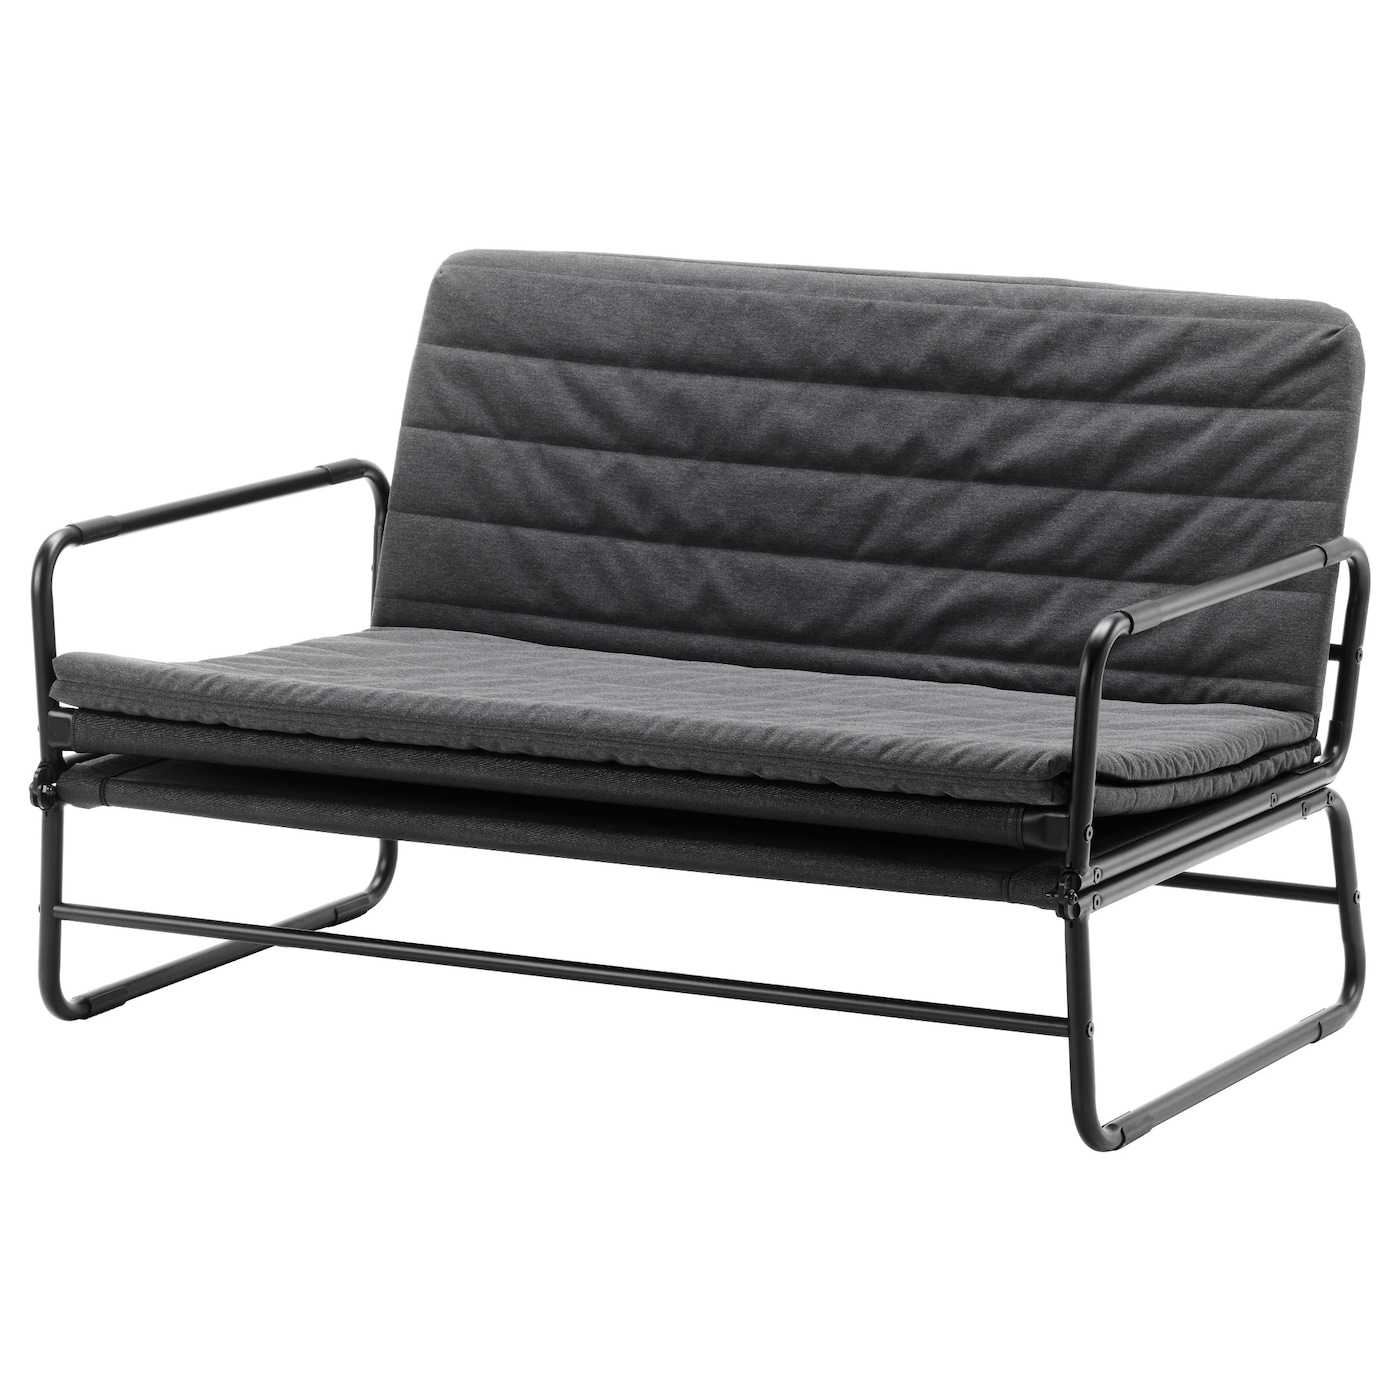 Sofa Bed Ikea : hammarn sofa bed knisa dark grey black 120 cm ikea ~ Watch28wear.com Haus und Dekorationen